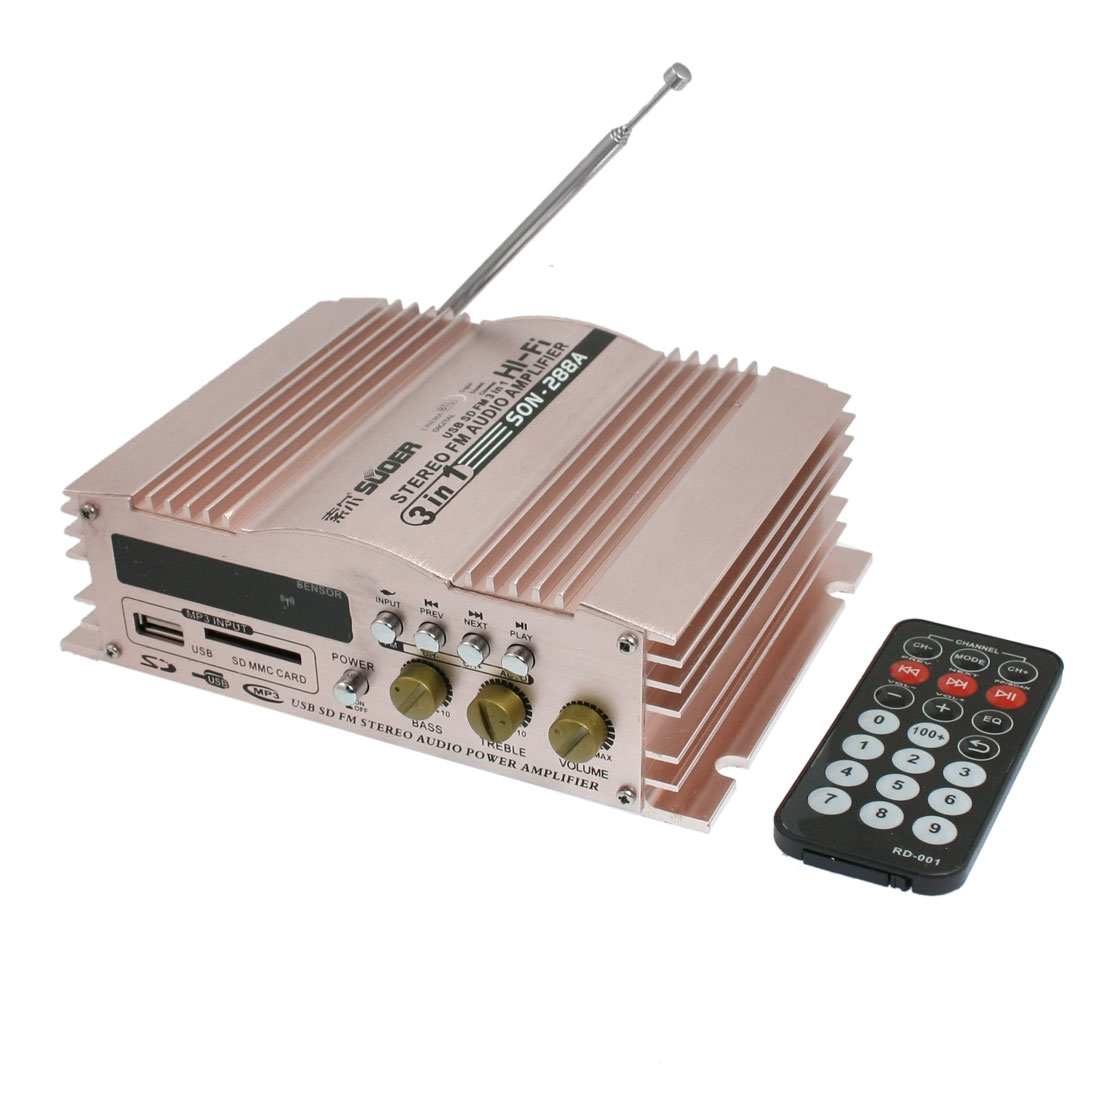 DC 12V 5A 3 in 1 SD FM Radio USB Audio Power Amplifier 600W